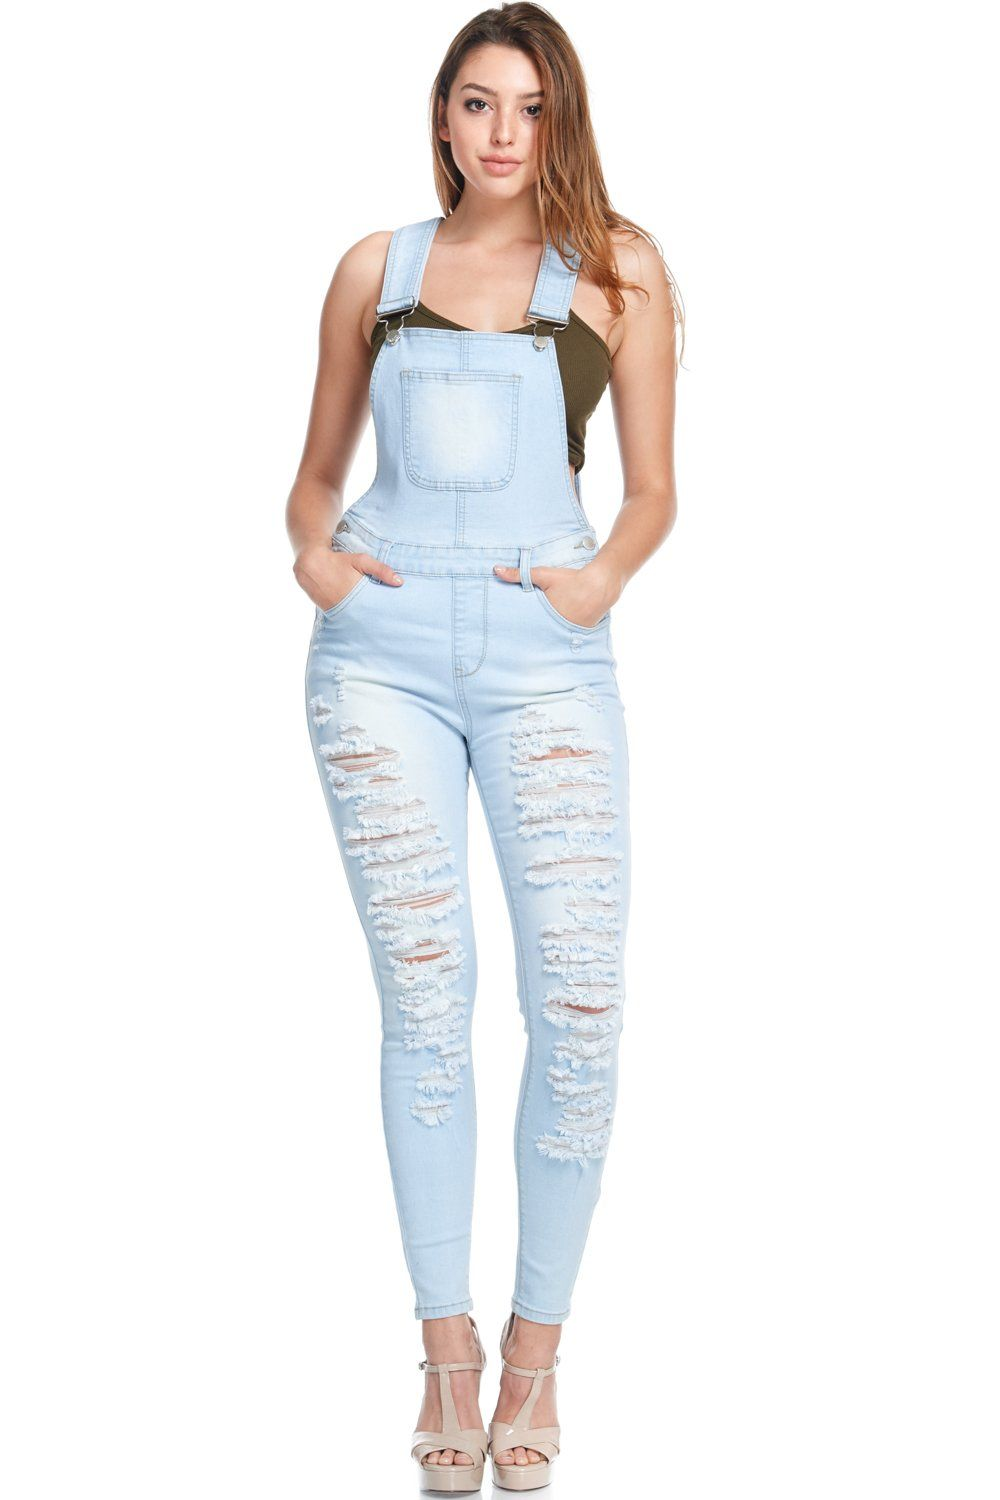 aa9c1608b9e Women s Distressed Stretch Denim Overalls - Light blue in 2019 ...